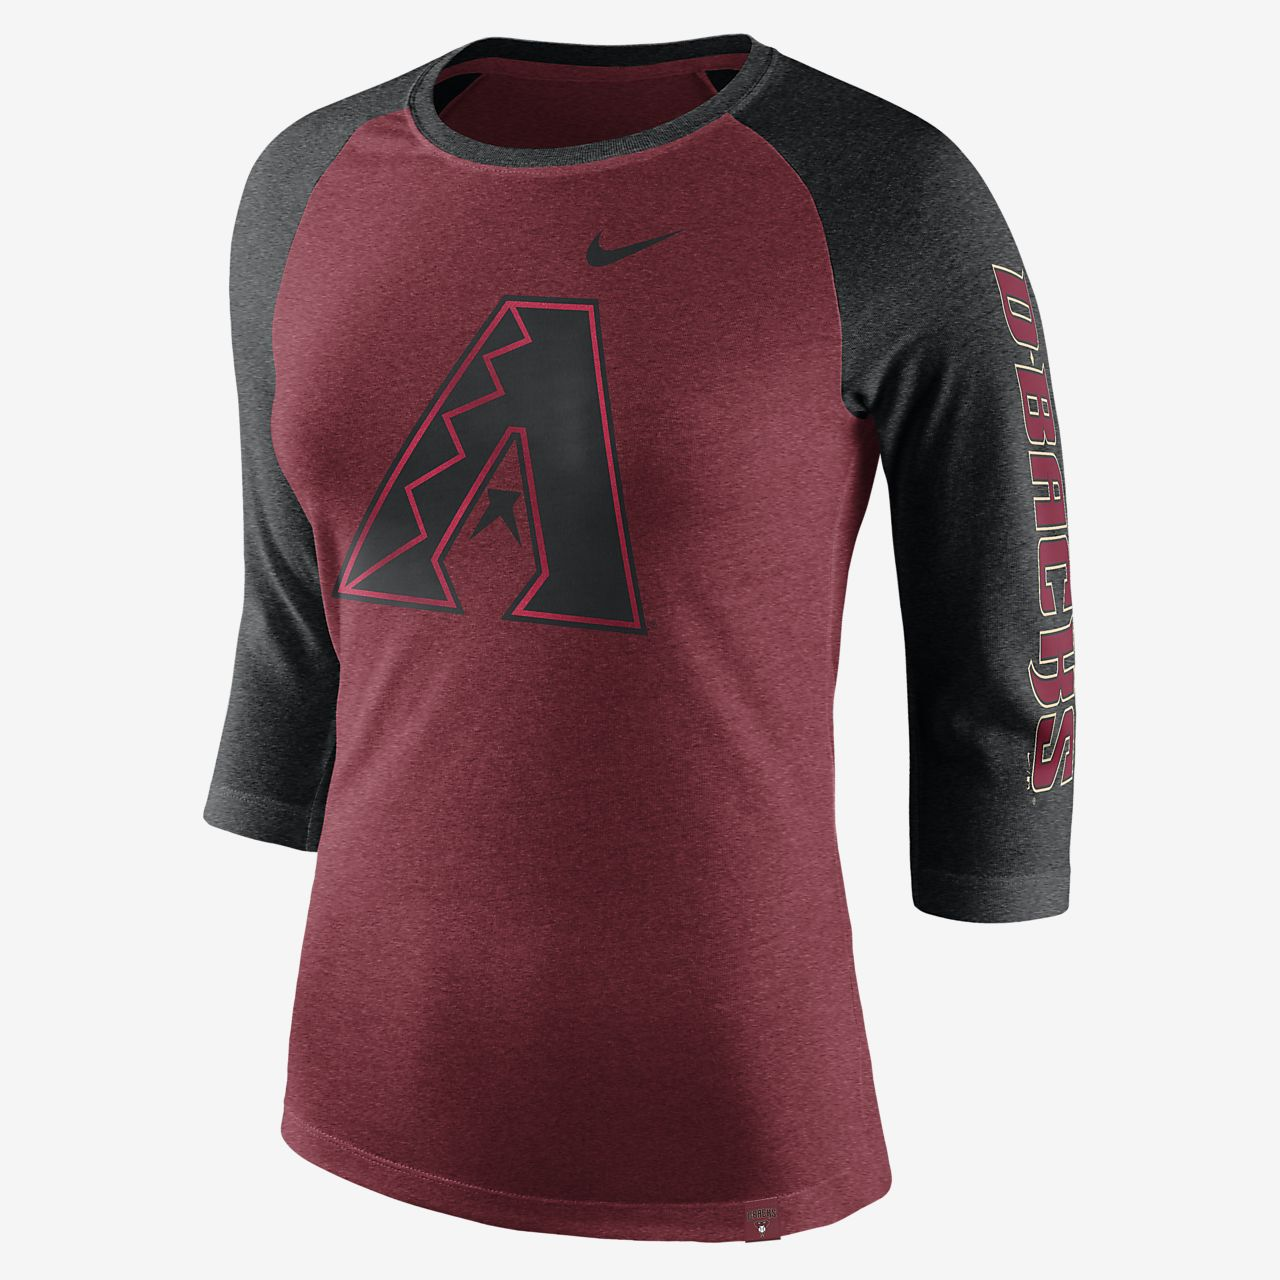 Nike Tri-Blend Raglan (MLB Diamondbacks) Women's 3/4 Sleeve Top